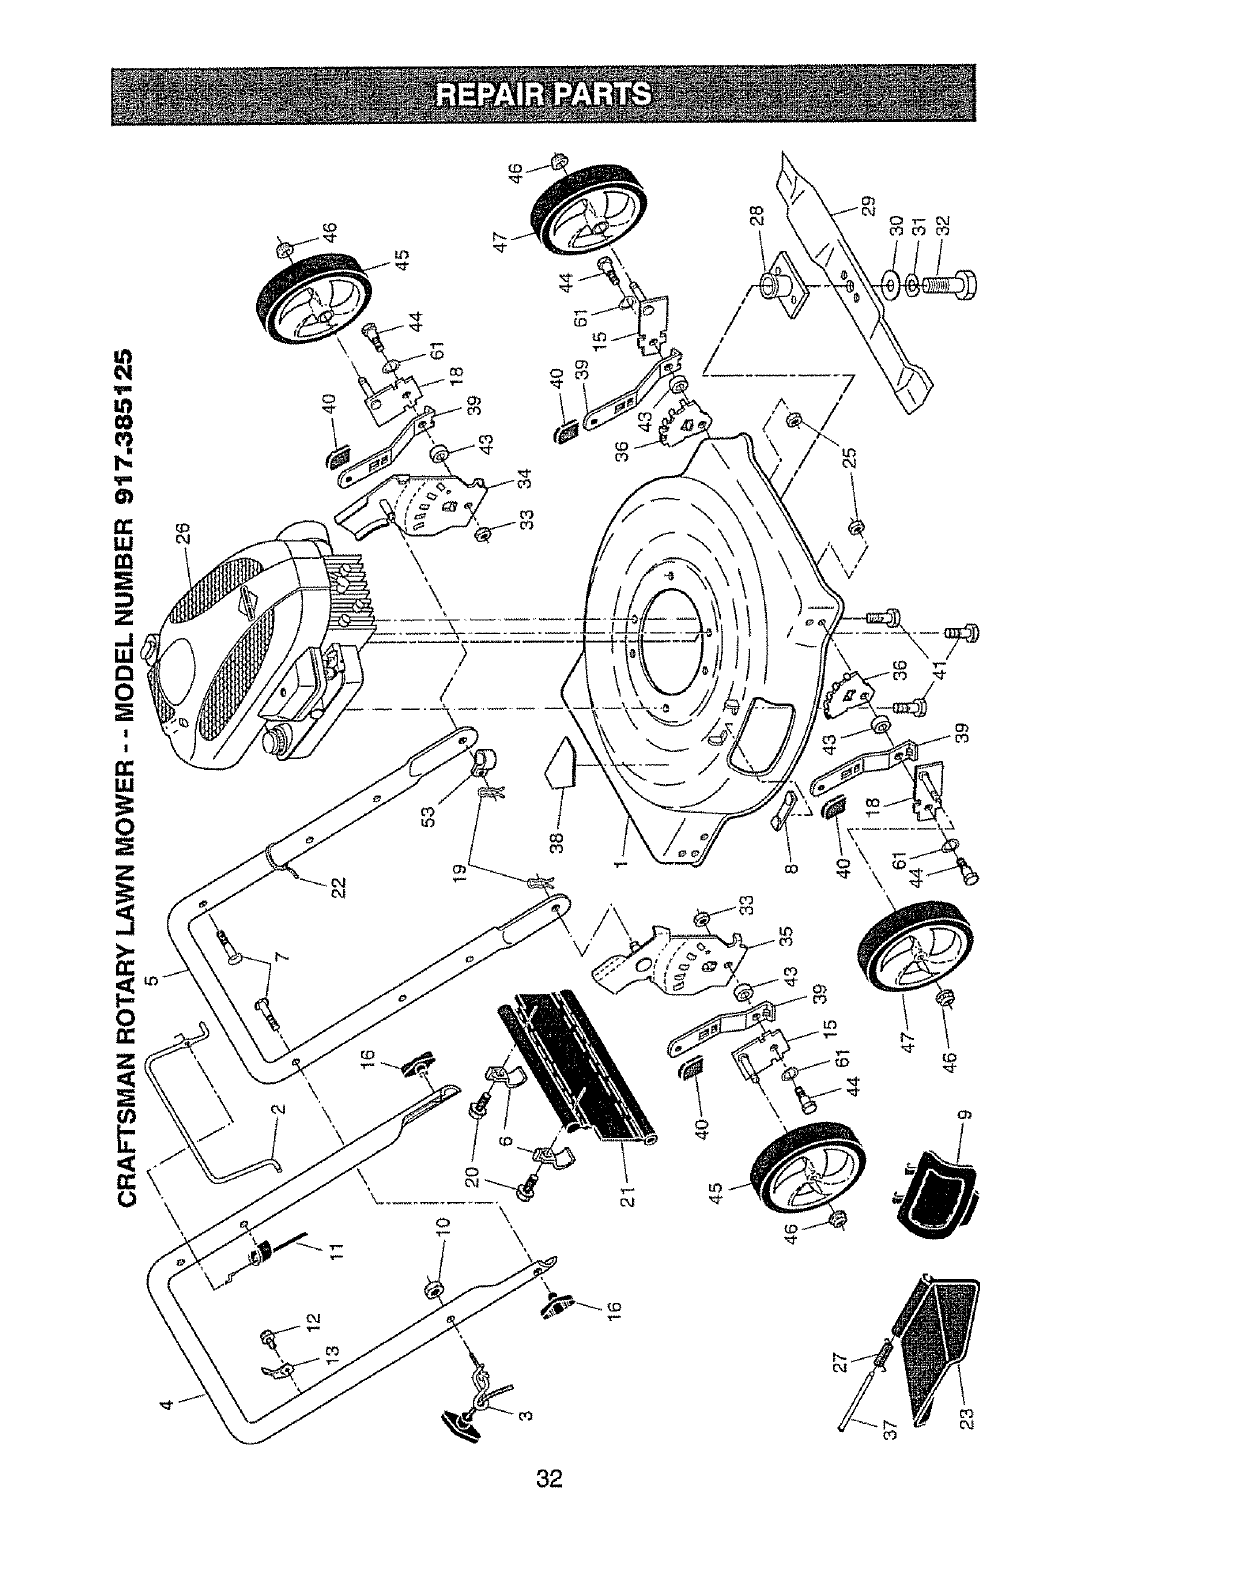 Page 32 of Craftsman Lawn Mower 917.385125 User Guide